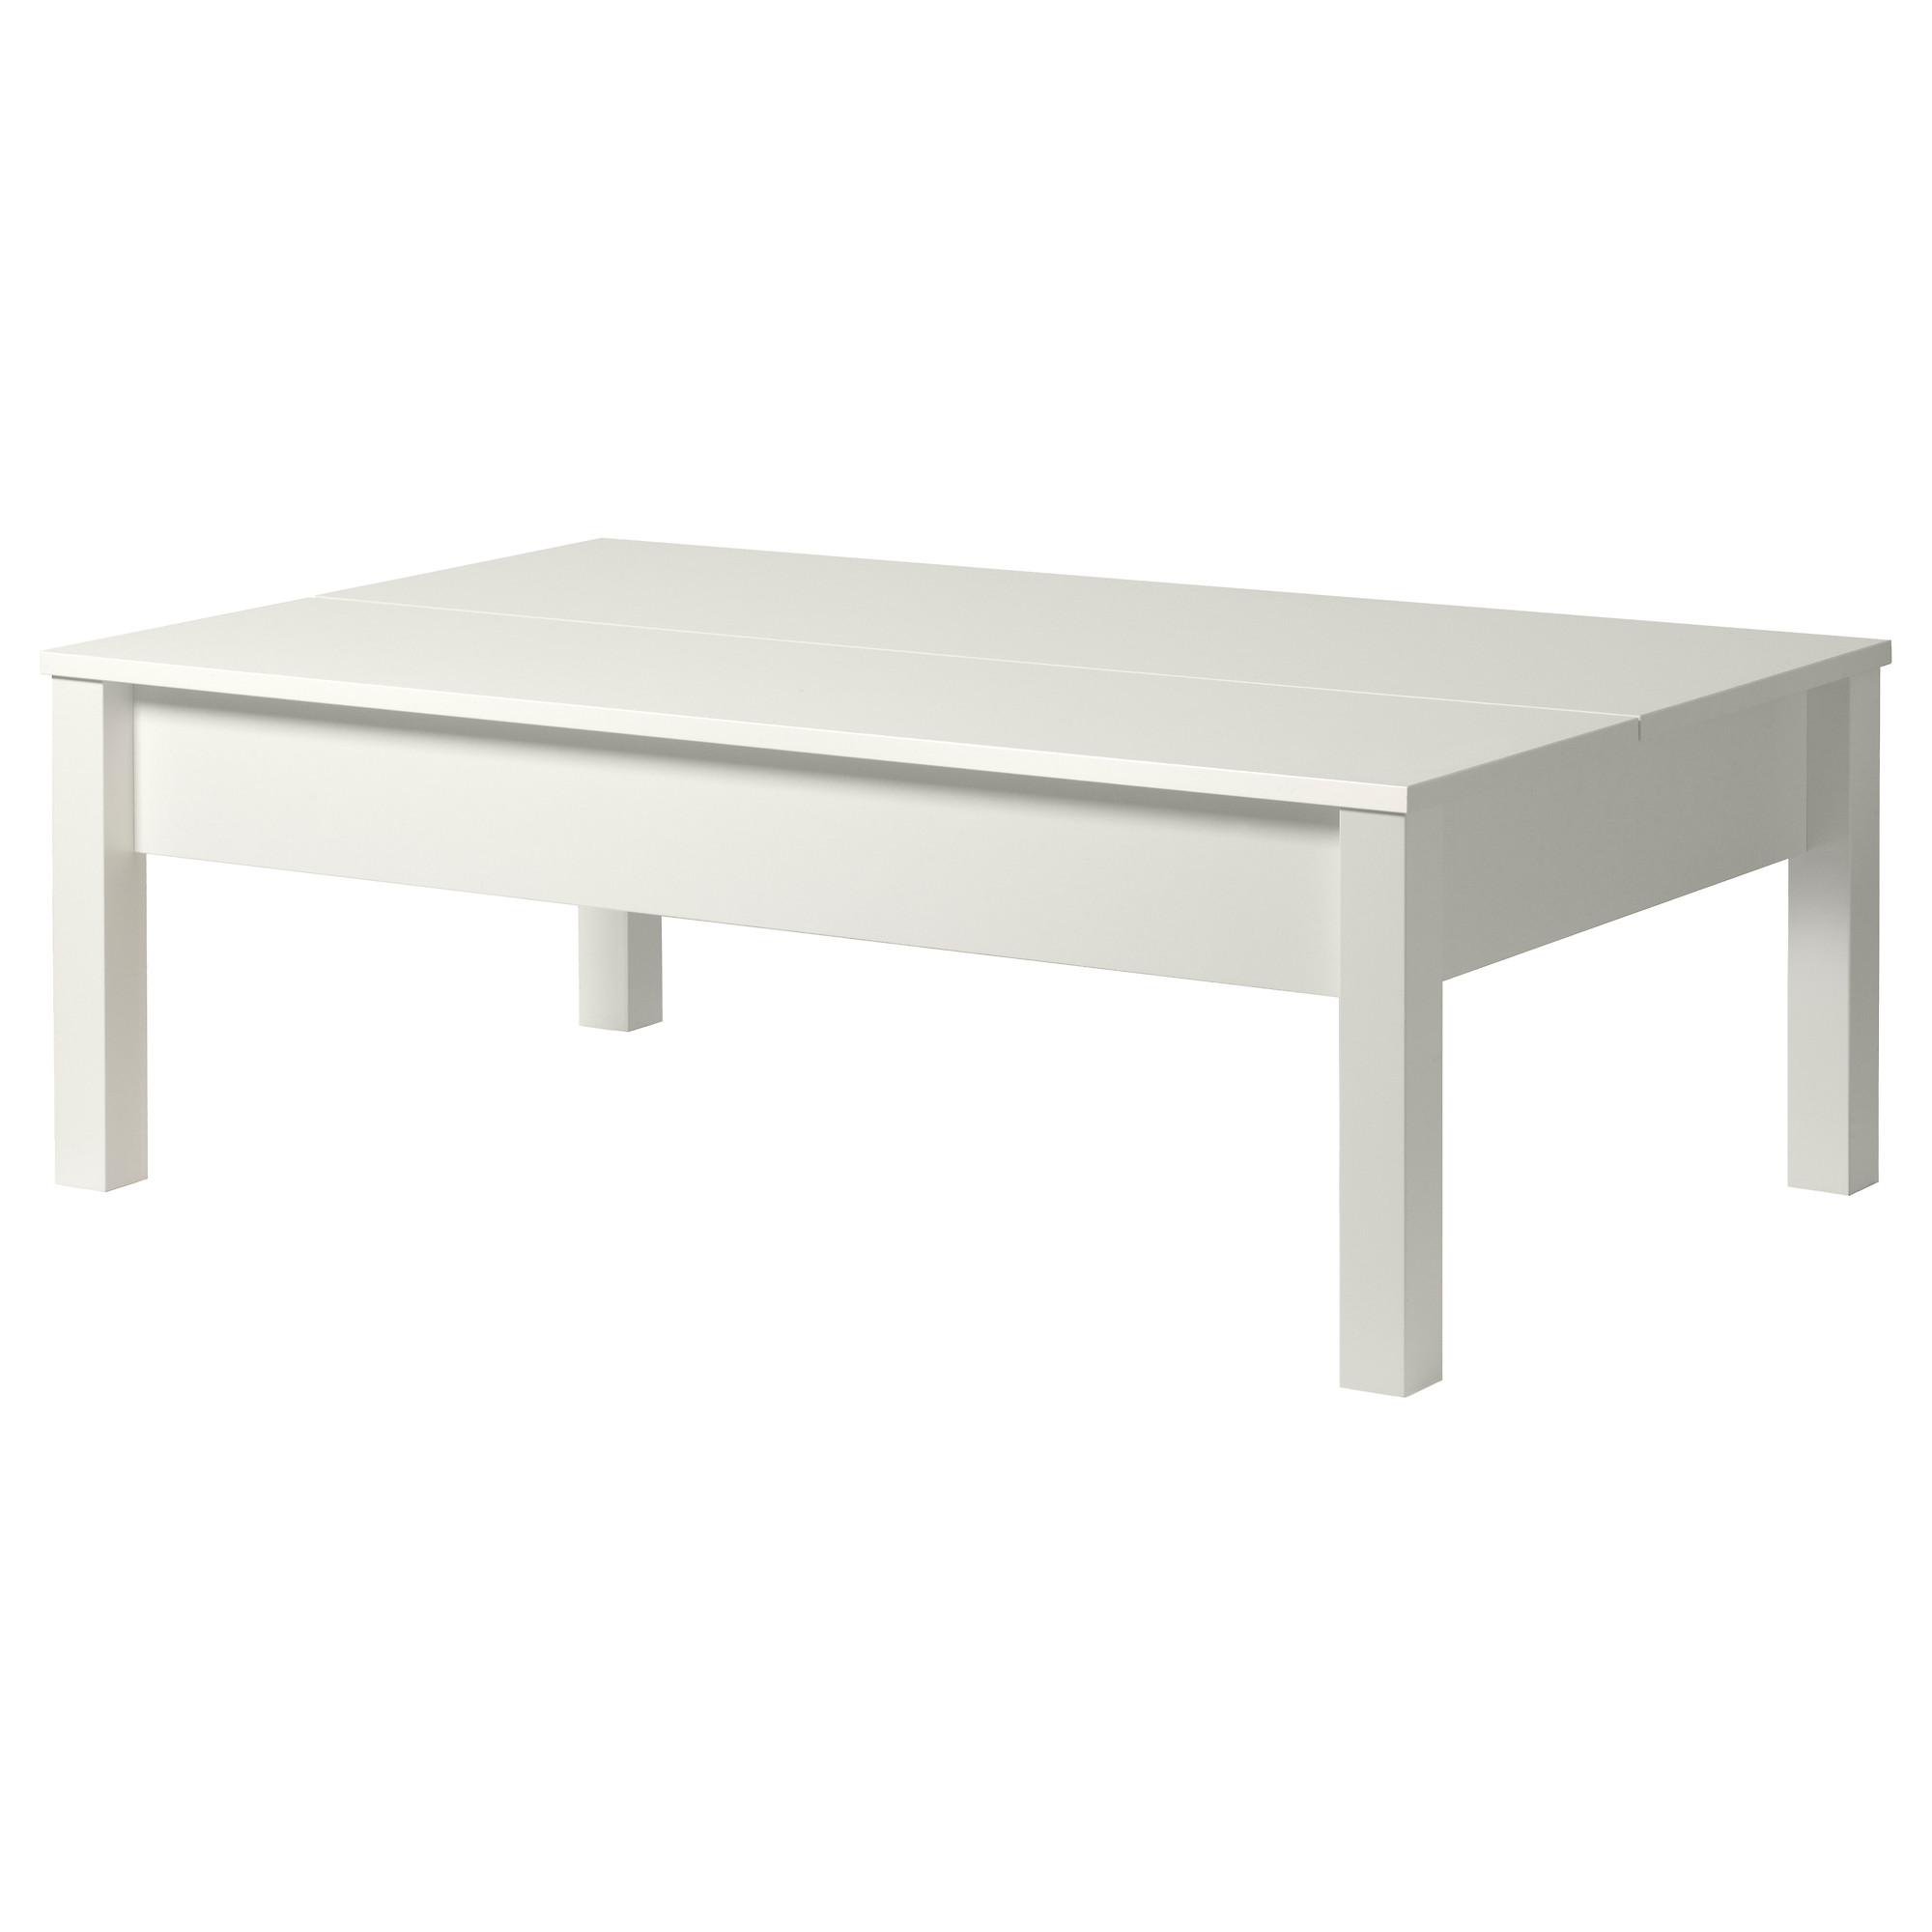 Table basse jardin ikea mobilier design d coration d 39 int rieur - Ikea table jardin ...